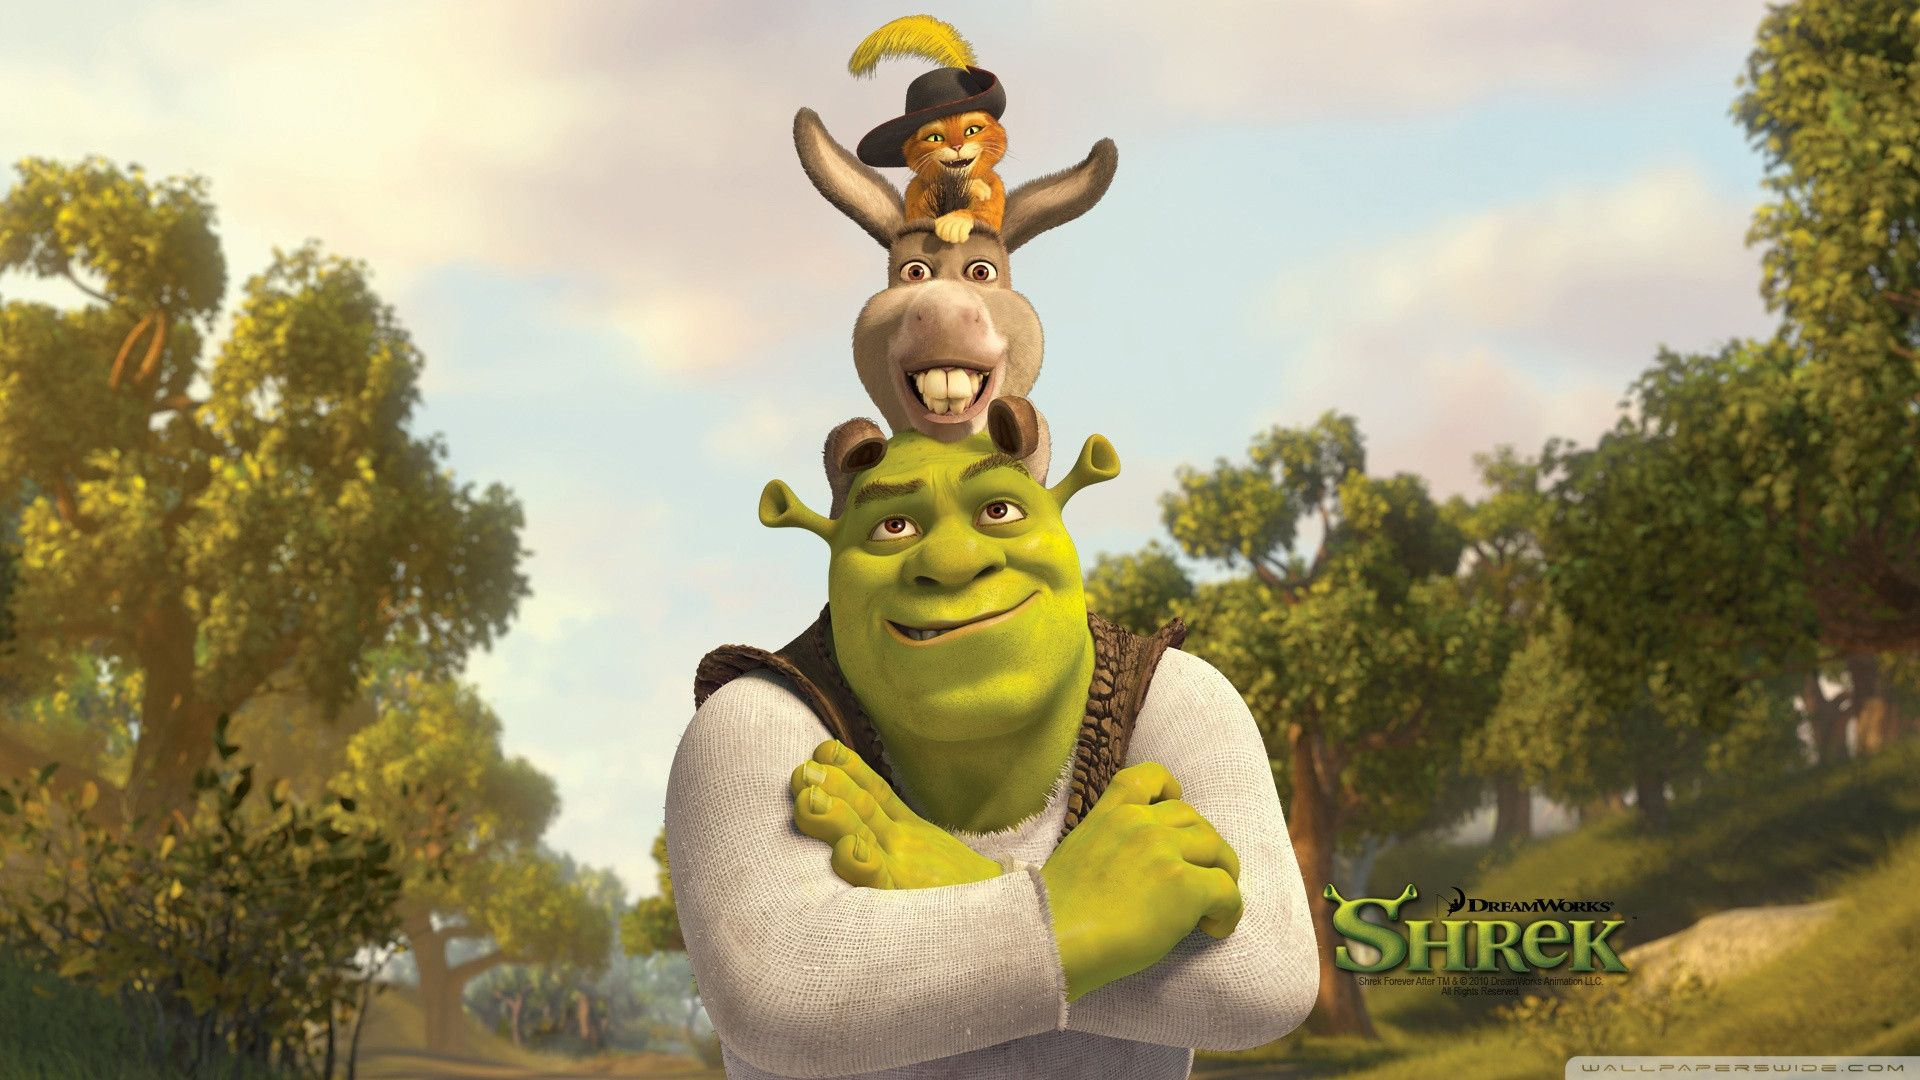 Shrek 2 Wallpapers - Wallpaper Cave